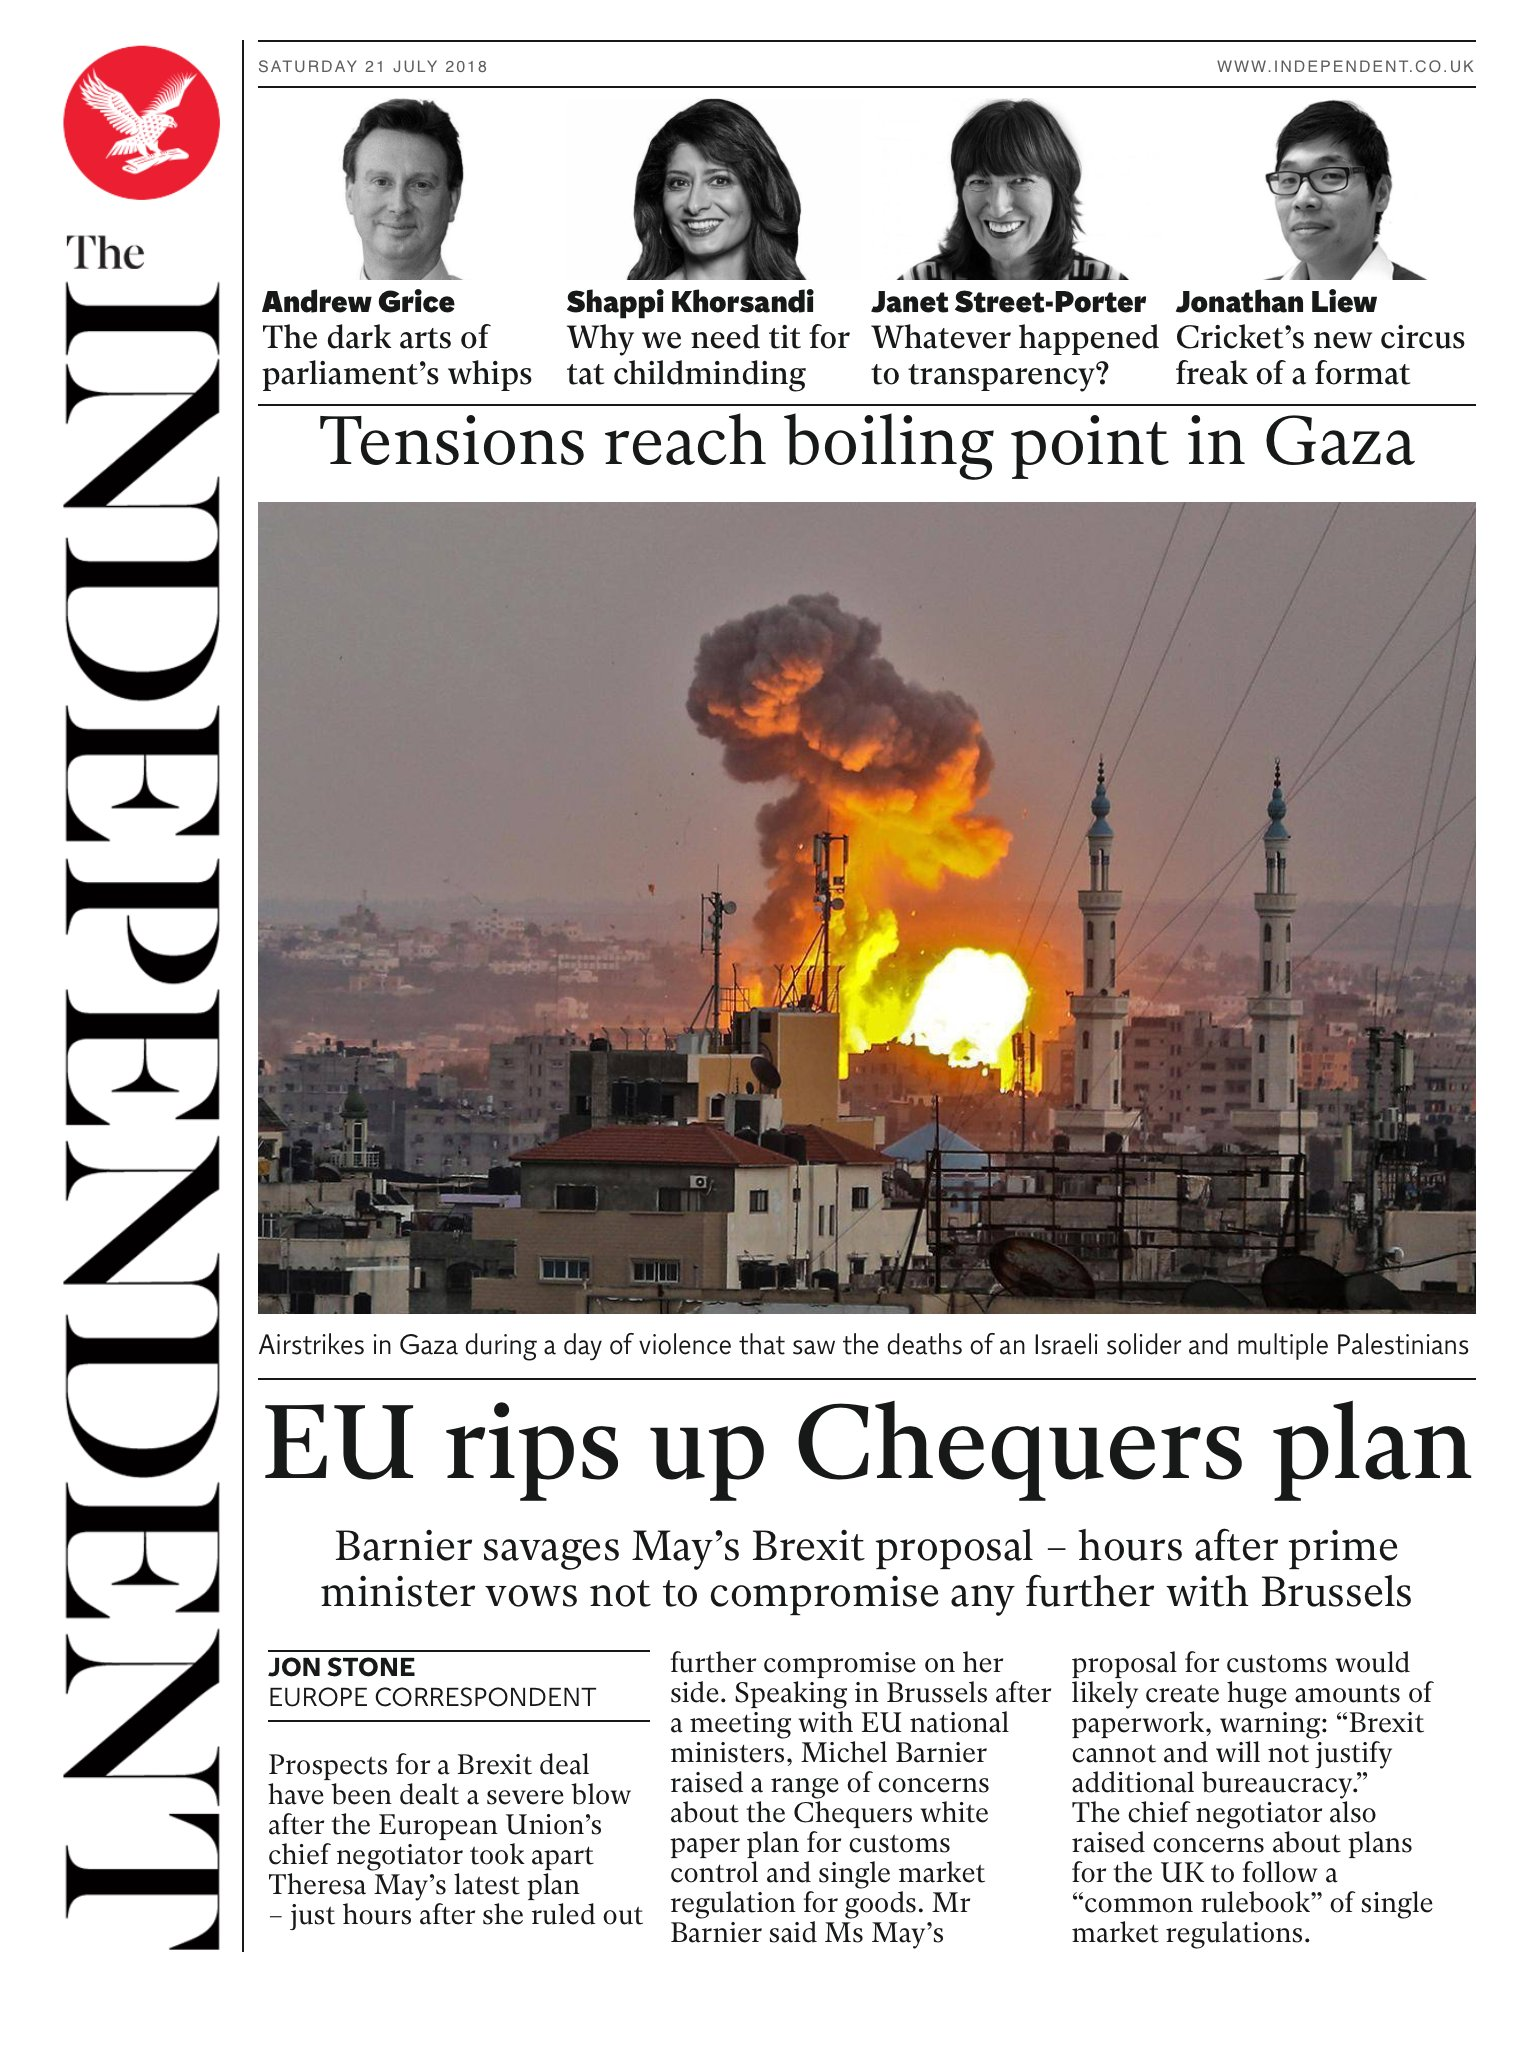 Tomorrow's @independent front page #tomorrowspaperstoday To subscribe to the daily edition: https://t.co/XF8VnDpHYF https://t.co/7RSr5BUkk2